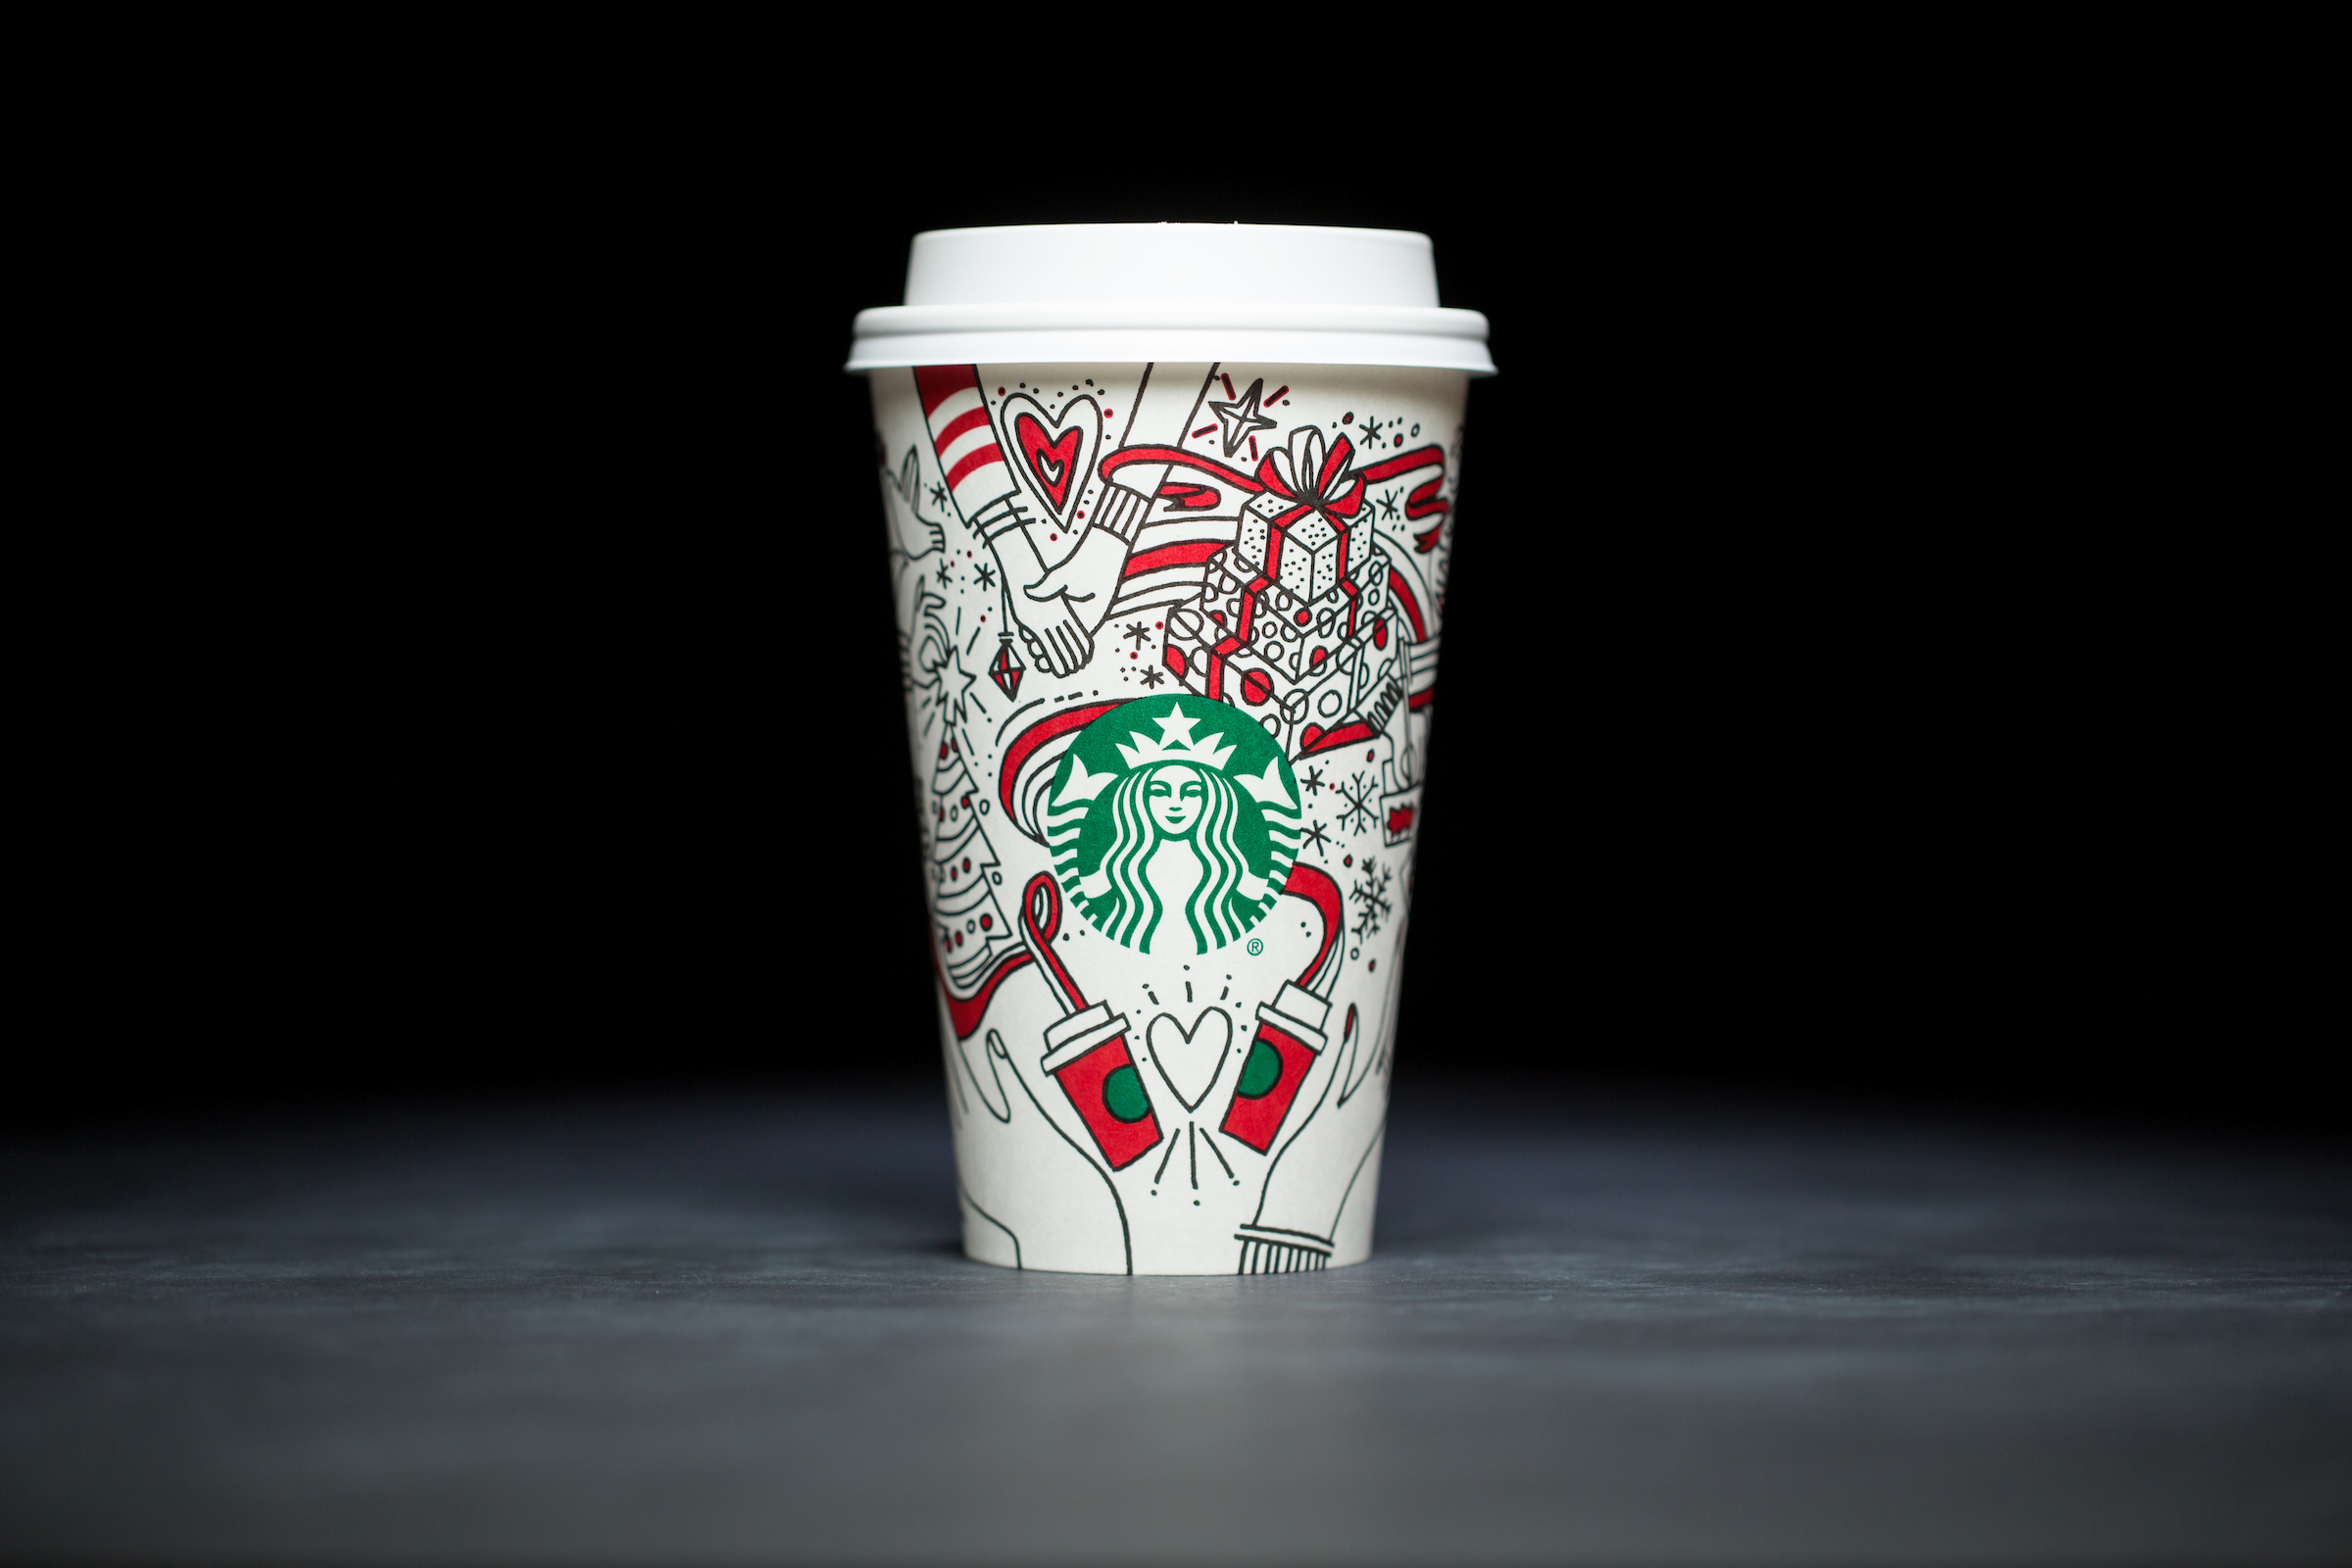 2017: For 20 years, Starbucks have released a range of holiday cup designs, most of them based around their world famous red cup. It's not easy to find the very first Starbucks holiday cups, which made their debut in stores in 1997. Few were saved, and electronic design files were lost in an earthquake in 2001. Even an Internet search is unyielding, with the cups having made their arrival long before the first selfie. But, we have them here! Click on for a photos of all 20 holidays cup designs. (Image: Joshua Trujillo/Cover Images)